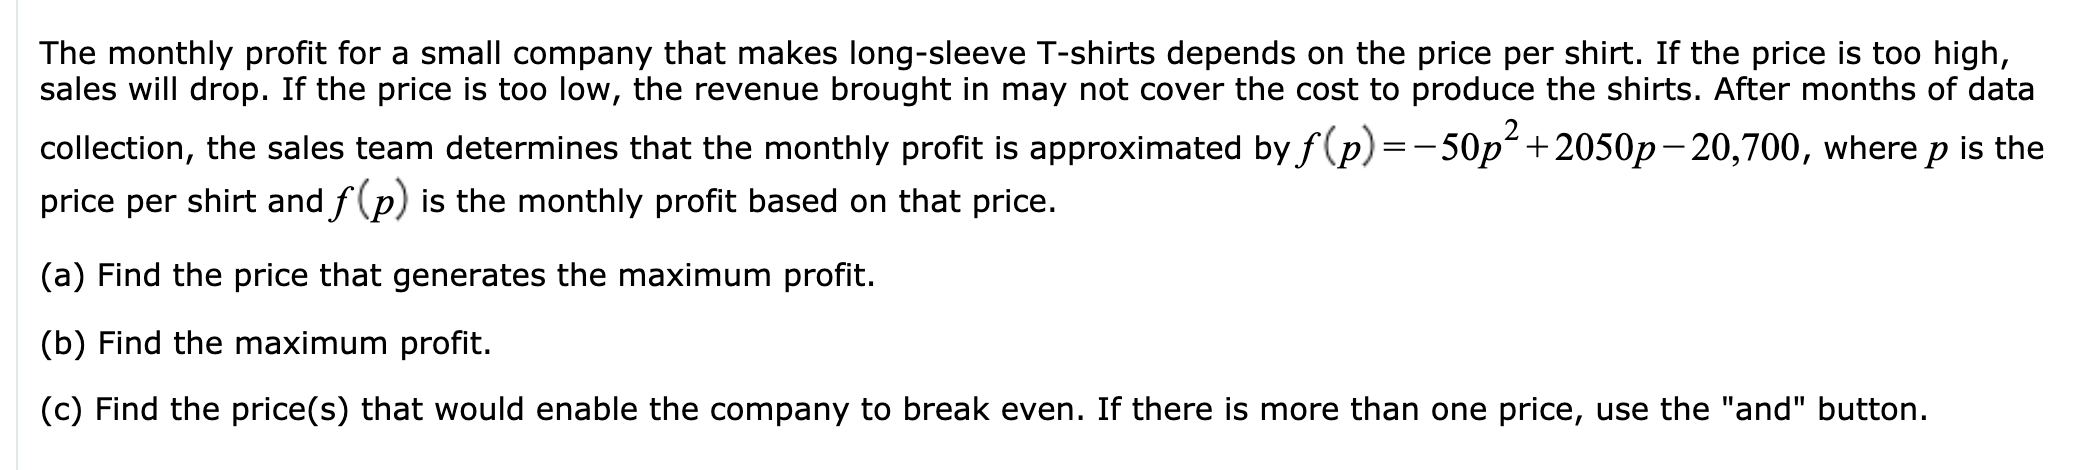 """The monthly profit for a small company that makes long-sleeve T-shirts depends on the price per shirt. If the price is too high, sales will drop. If the price is too low, the revenue brought in may not cover the cost to produce the shirts. After months of data collection, the sales team determines that the monthly profit is approximated byf(p) =-50p +2050p-20,700, where p is the price per shirt and f(p) is the monthly profit based on that price. (a) Find the price that generates the maximum profit. (b) Find the maximum profit. (c) Find the price(s) that would enable the company to break even. If there is more than one price, use the """"and"""" button."""